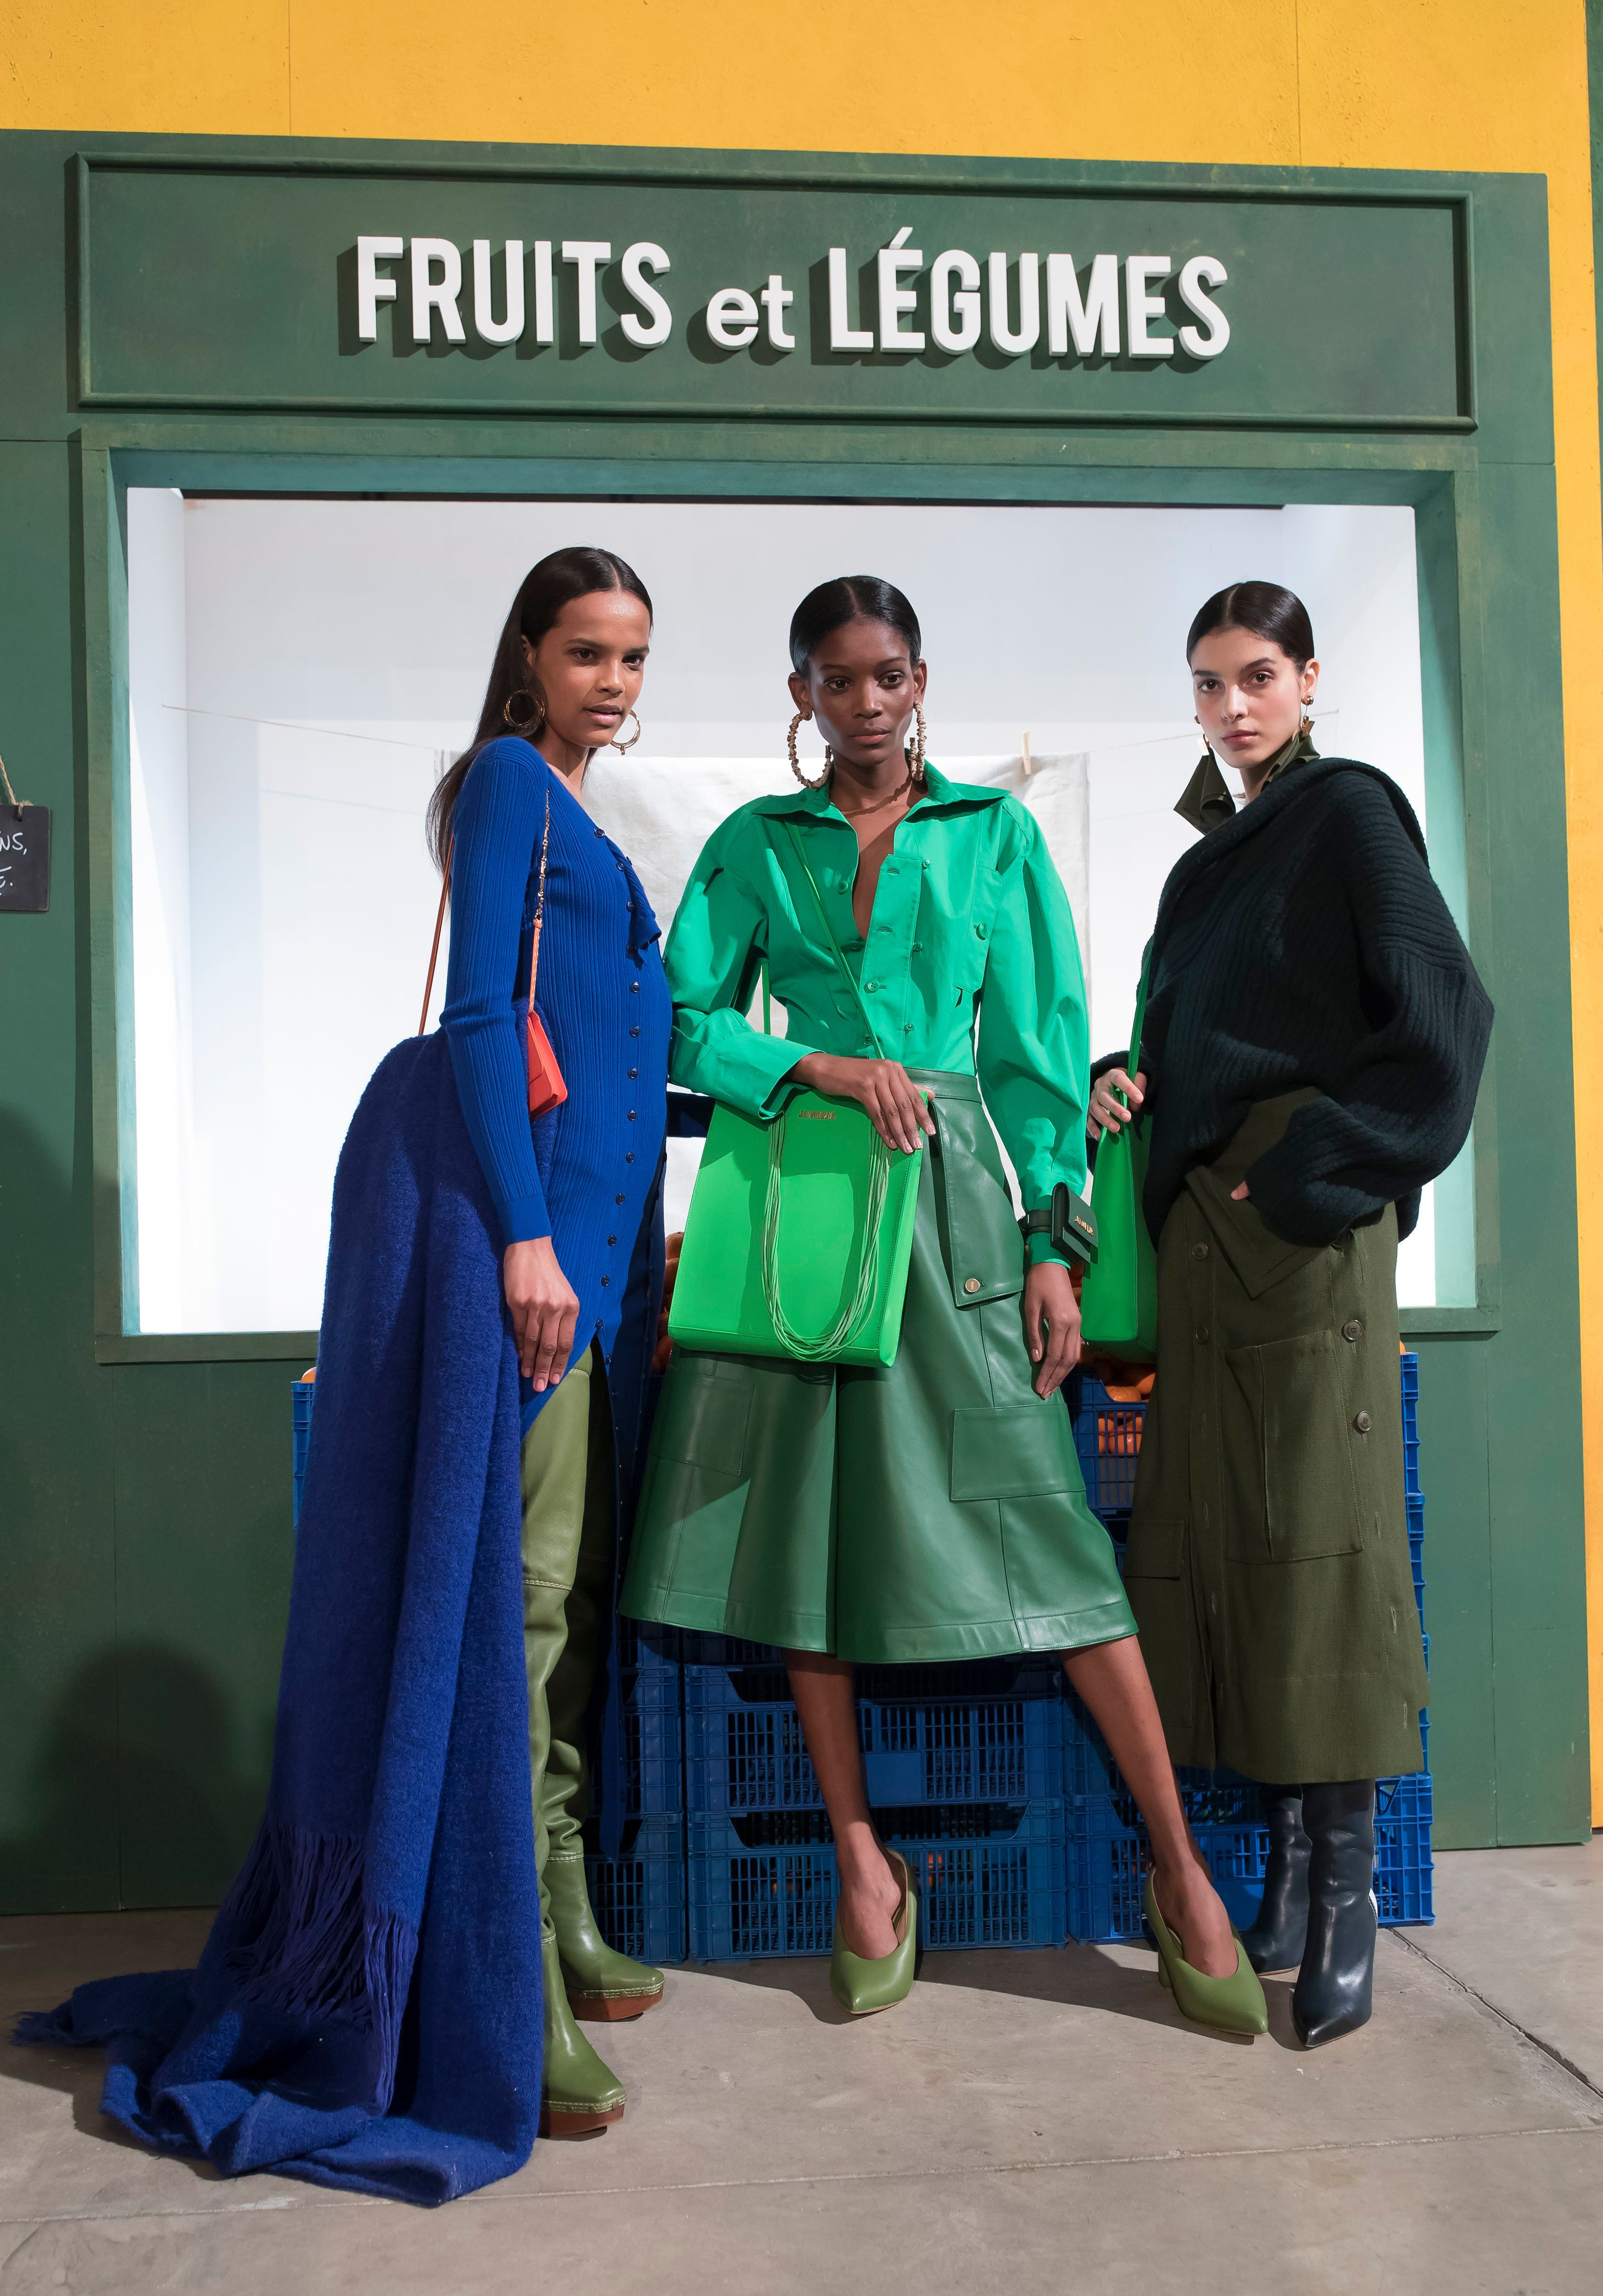 Models present creations from the Fall/Winter 2019/20 Women collection by French designer Jacquemus during the Paris Fashion Week, in Paris, France, 25 February 2019. The presentation of the Women collections runs from 25 February to 05 March.Jacquemus - Runway - Paris Fashion Week Women F/W 2019/20, France - 25 Feb 2019